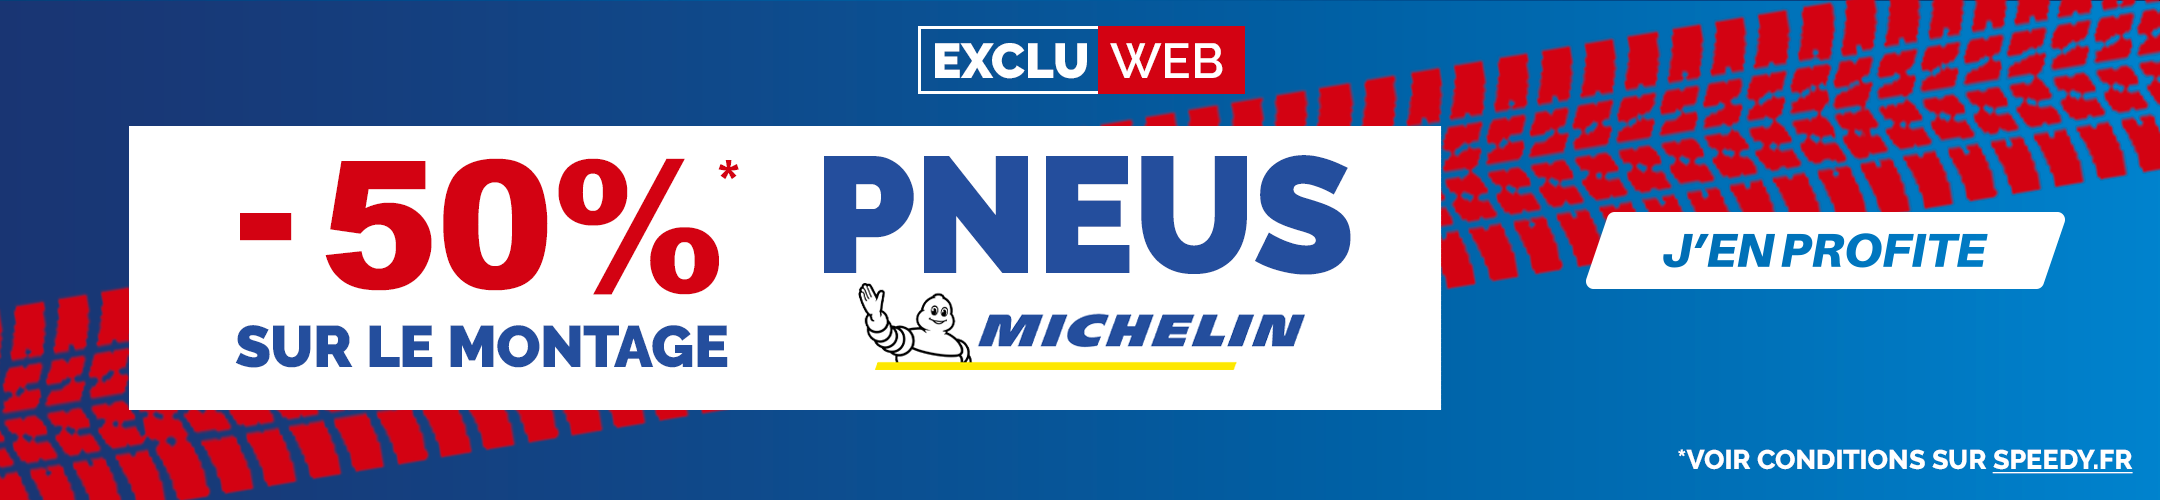 Promotion Speedy pneus Michelin montage